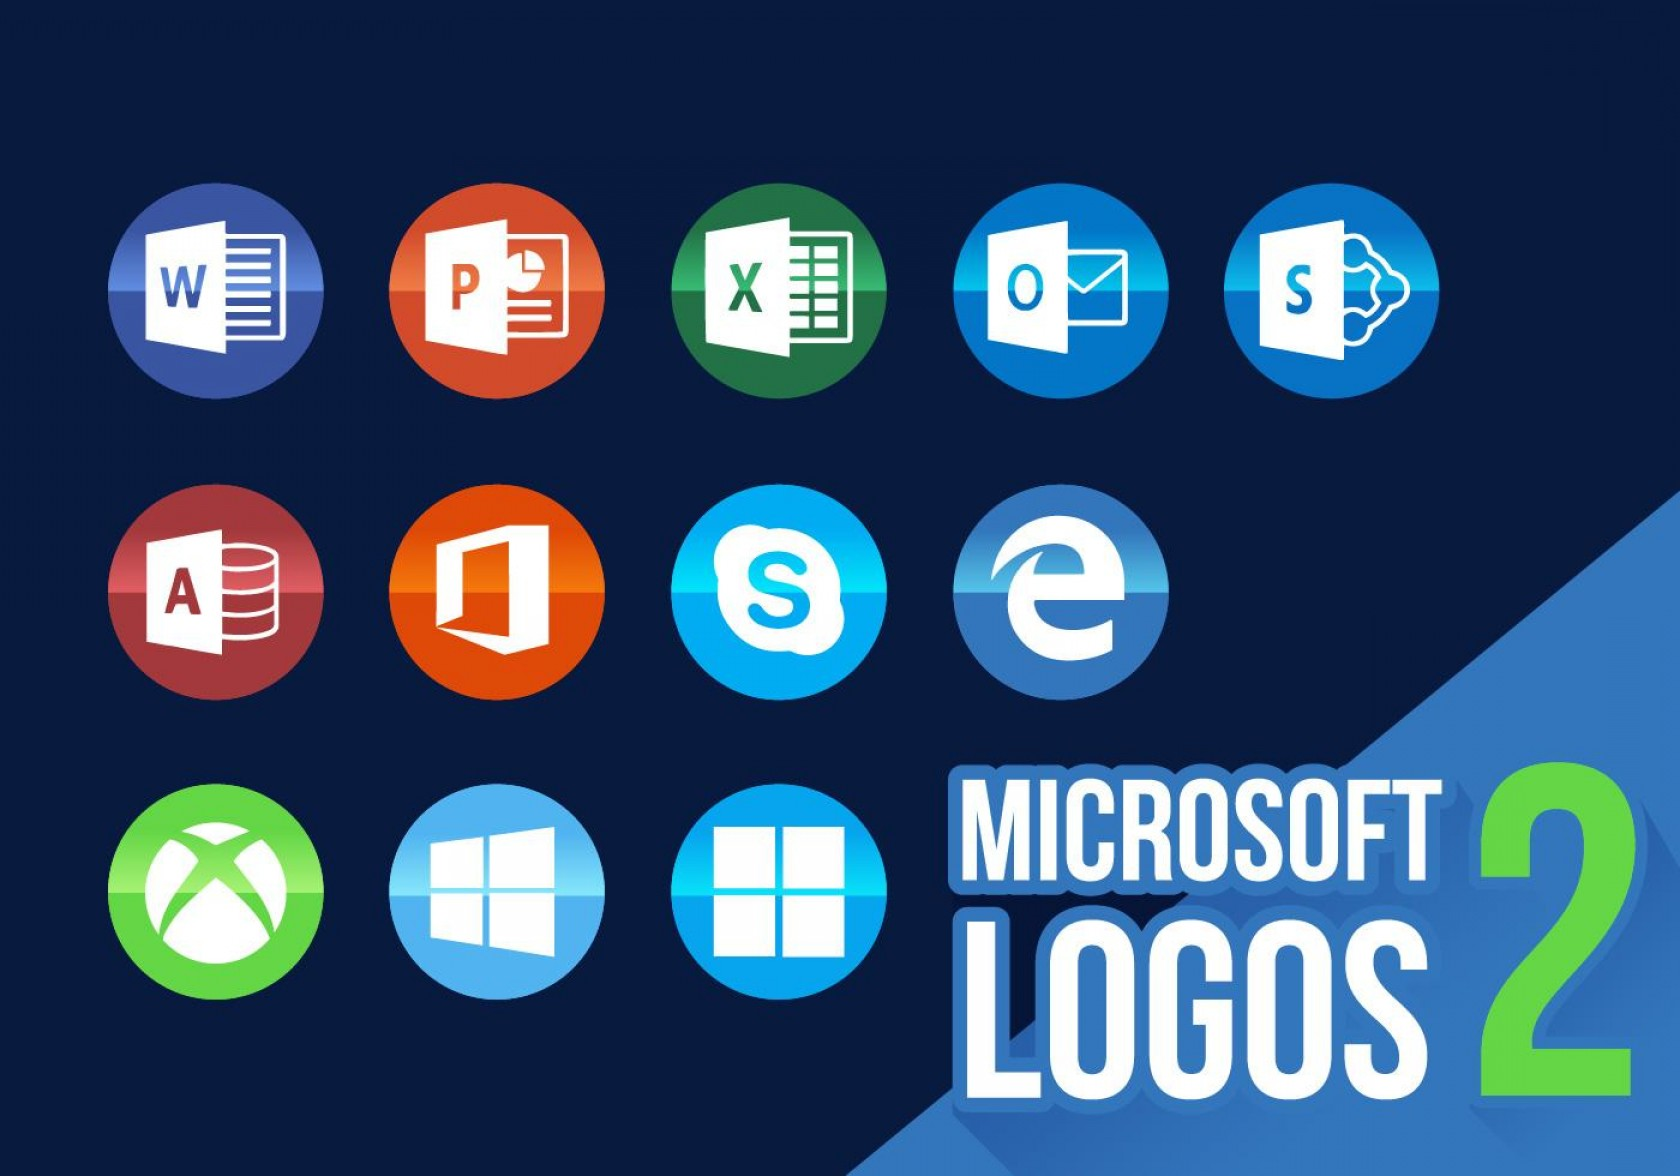 New Microsoft Logo Vector: Best Microsoft Icons New Logos Vector Images